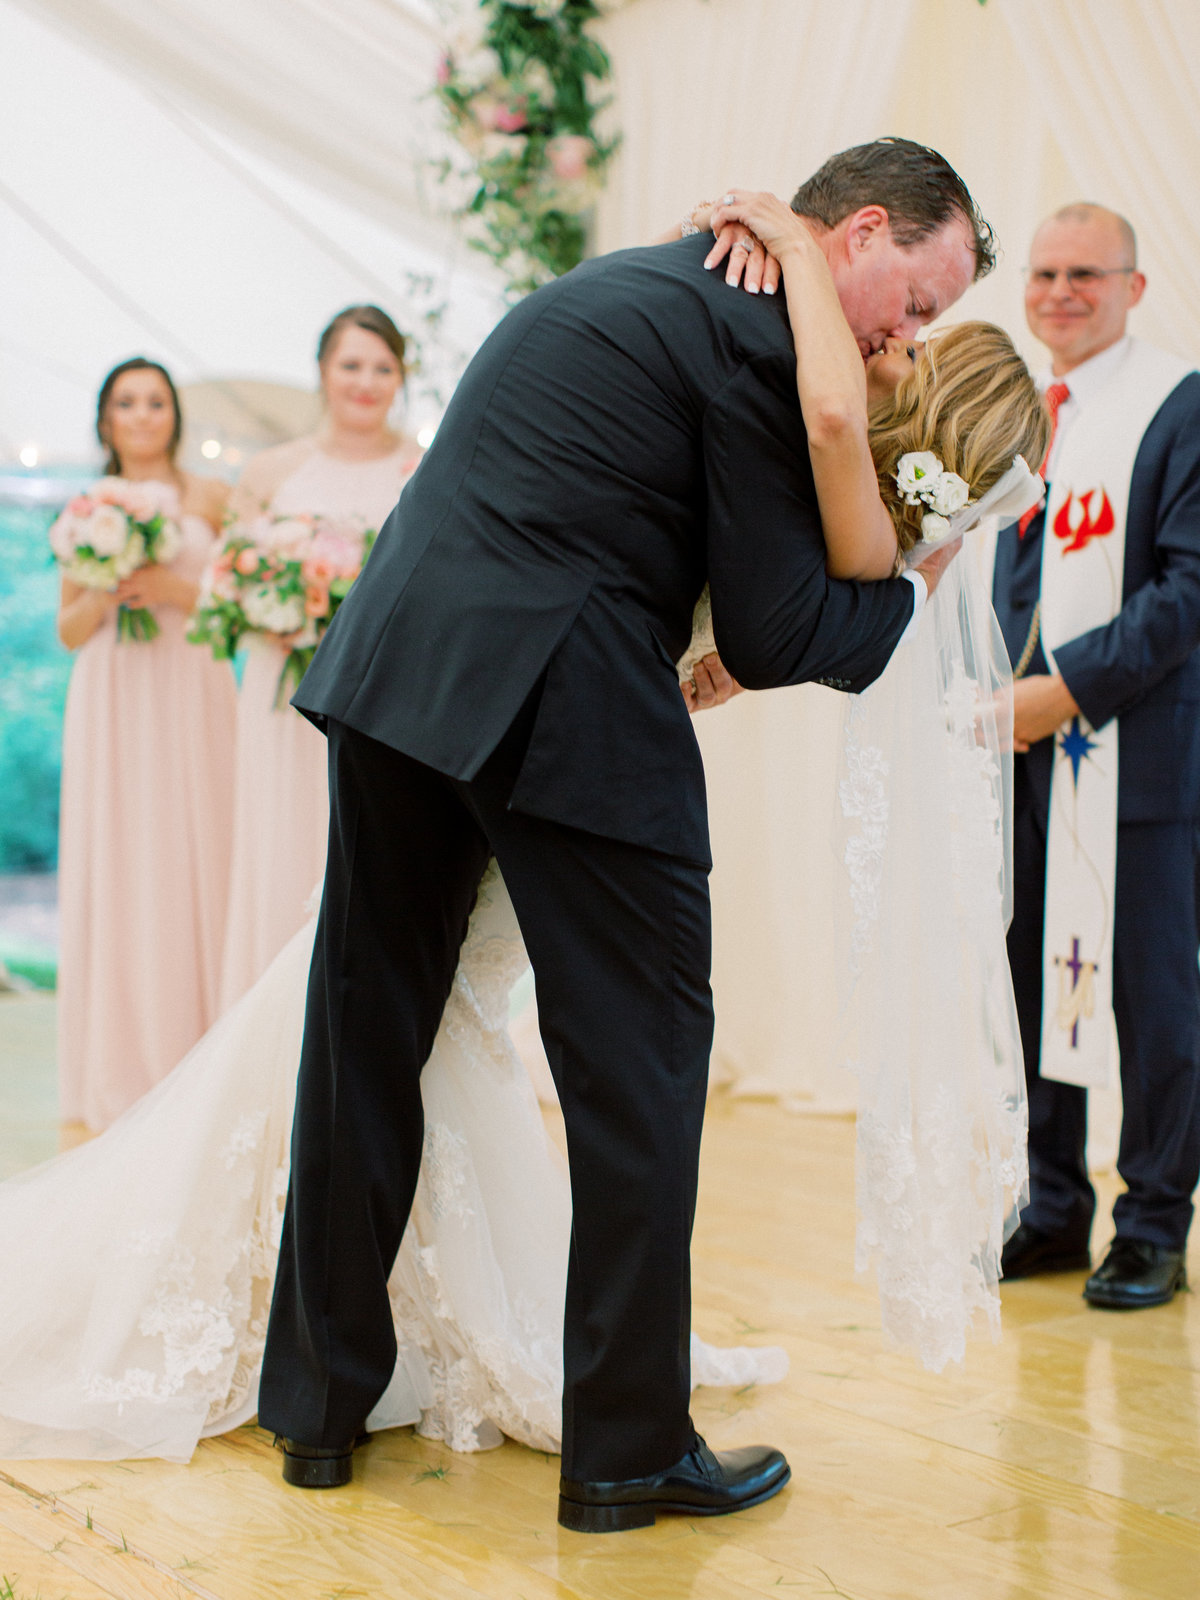 2019-06-08Carrie&MikeWedding-220